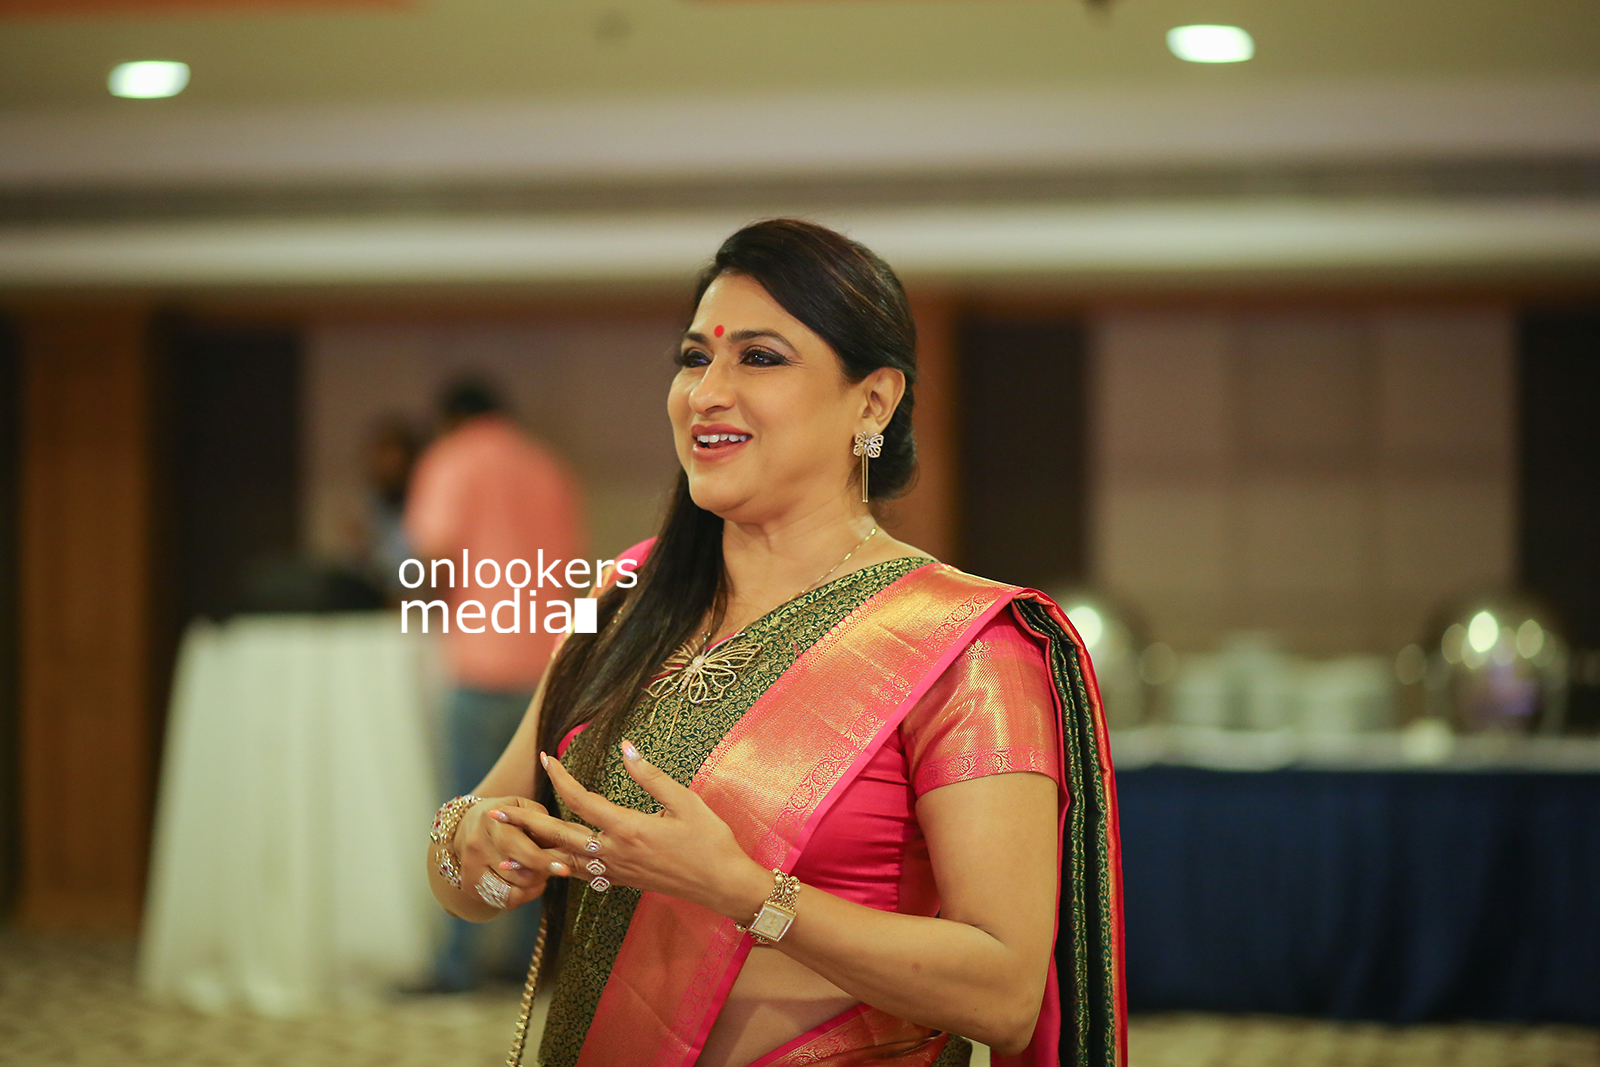 http://onlookersmedia.in/wp-content/uploads/2017/04/Seematti-Kanchi-Banaras-Bridal-Collection-2017-Press-Meet-7.jpg